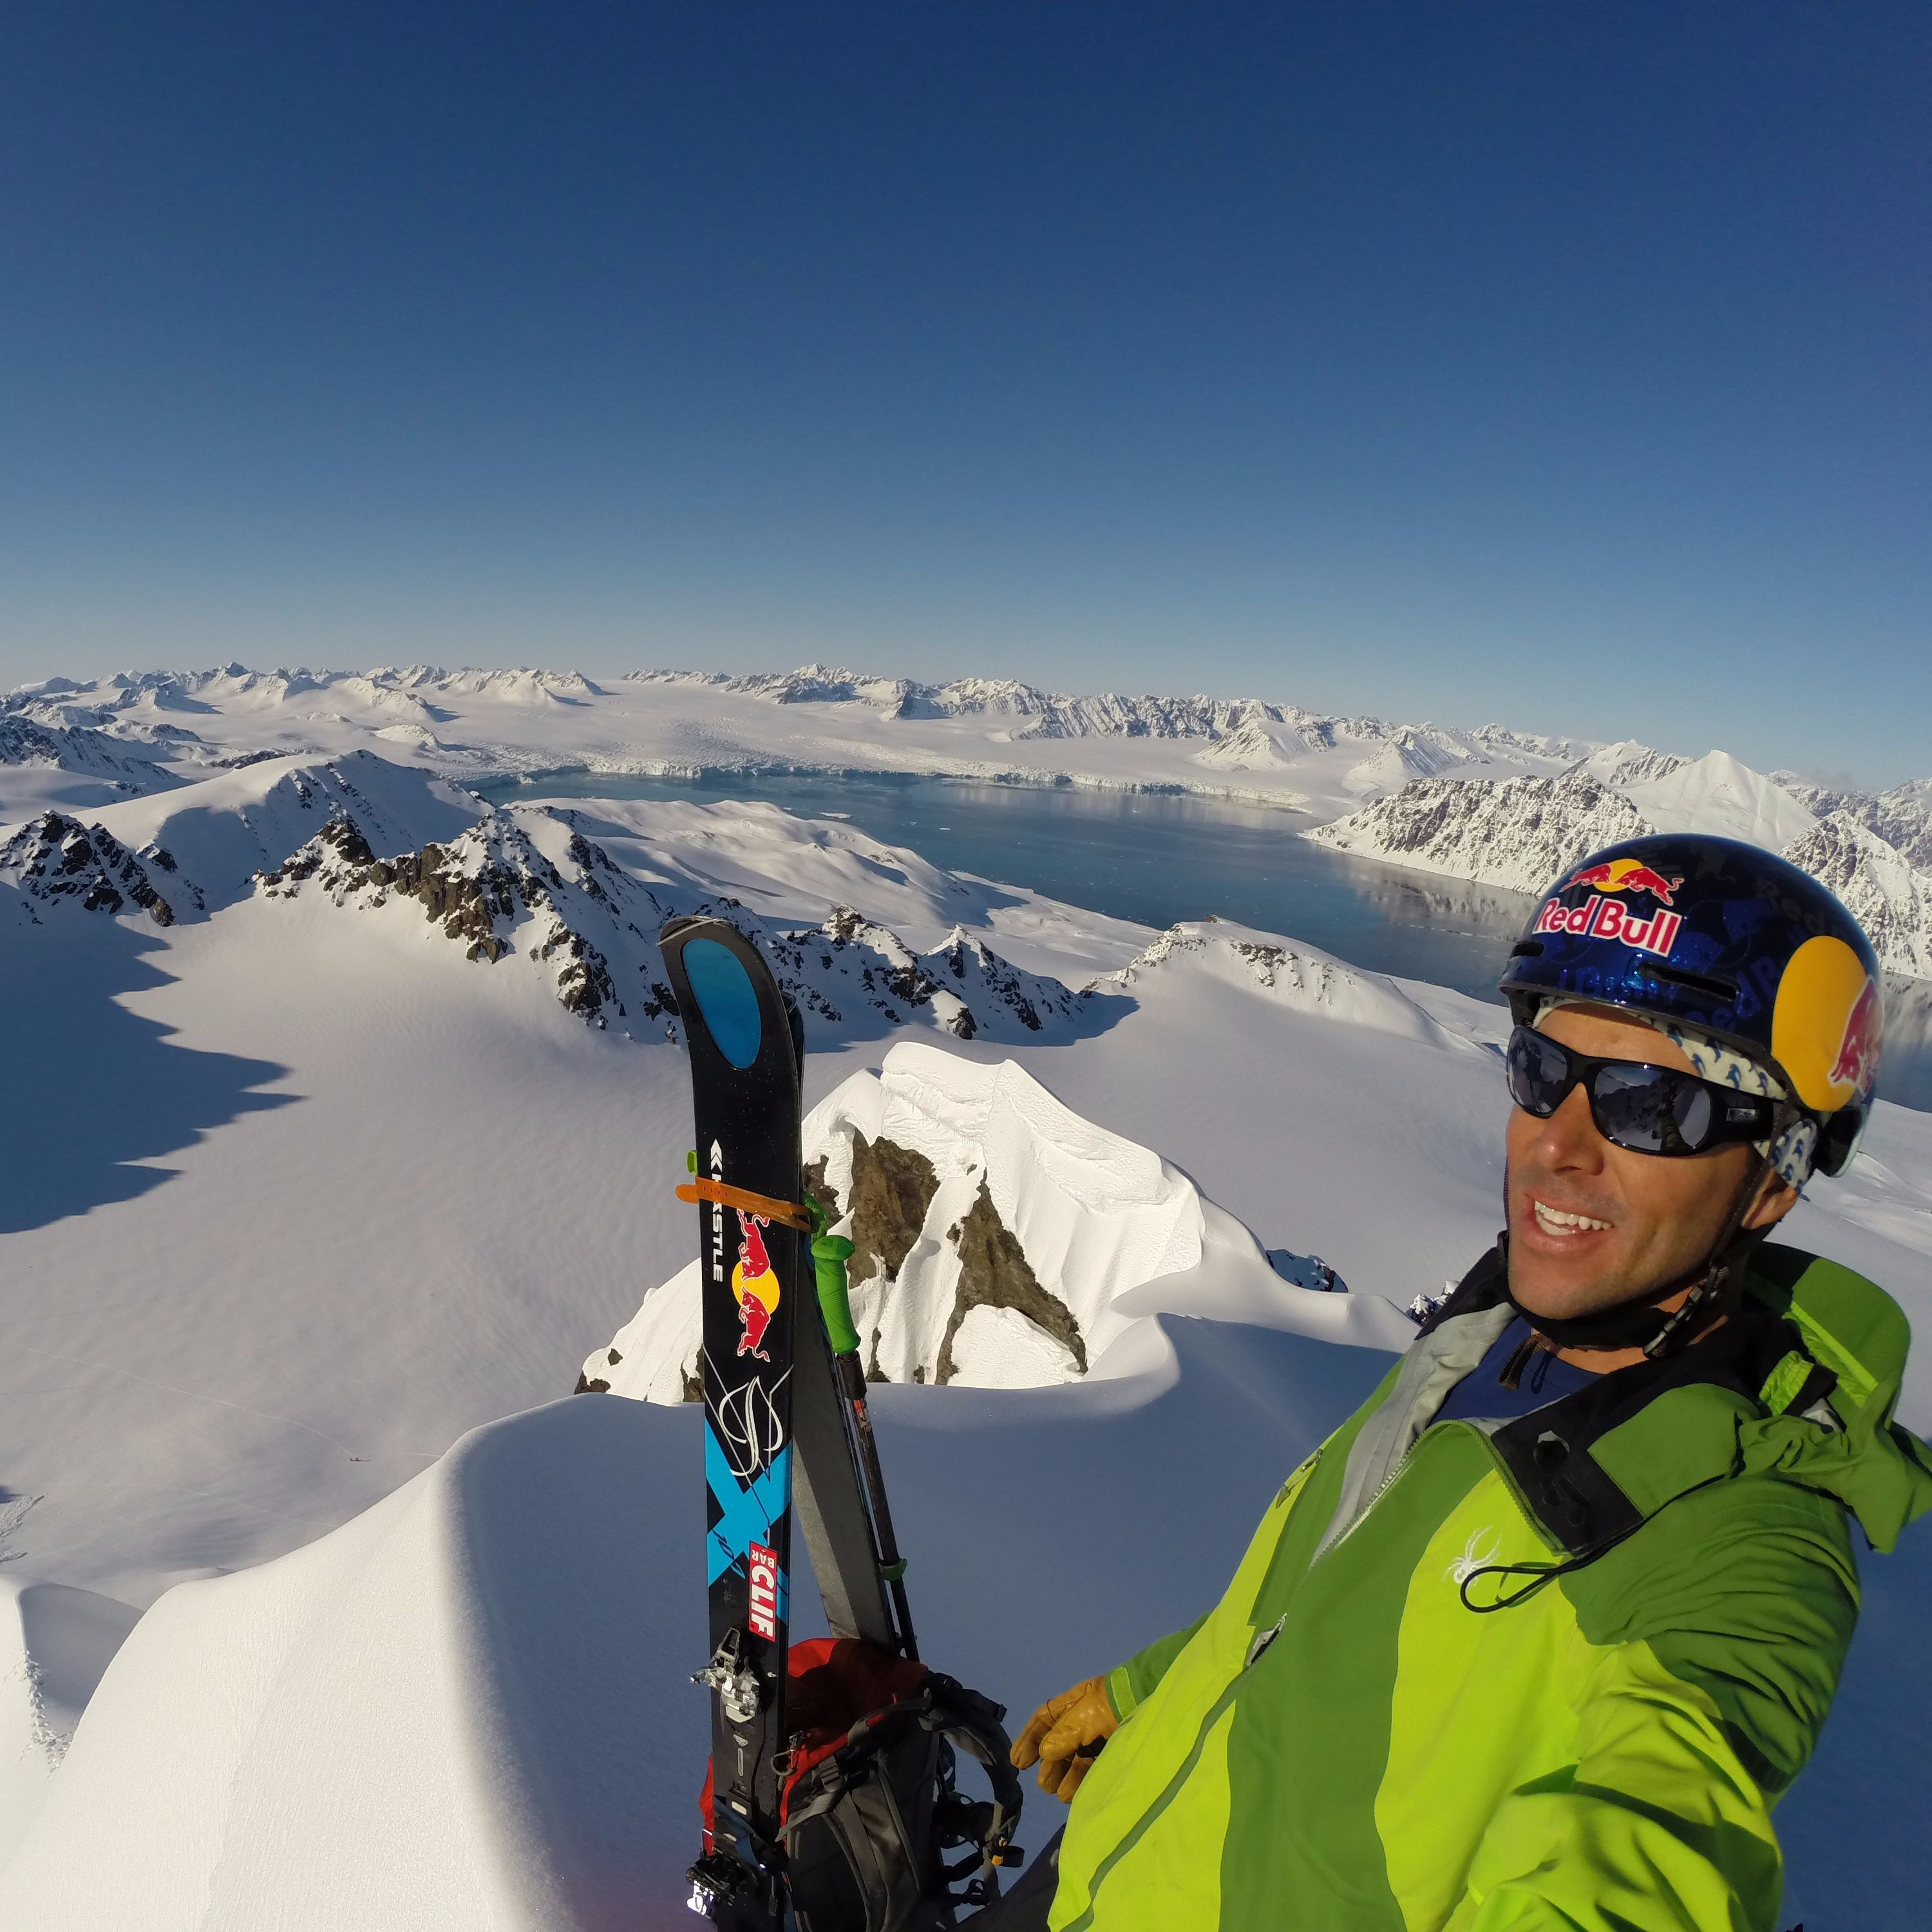 Family, career, and the pursuit of powder: an interview with pro skier Chris Davenport